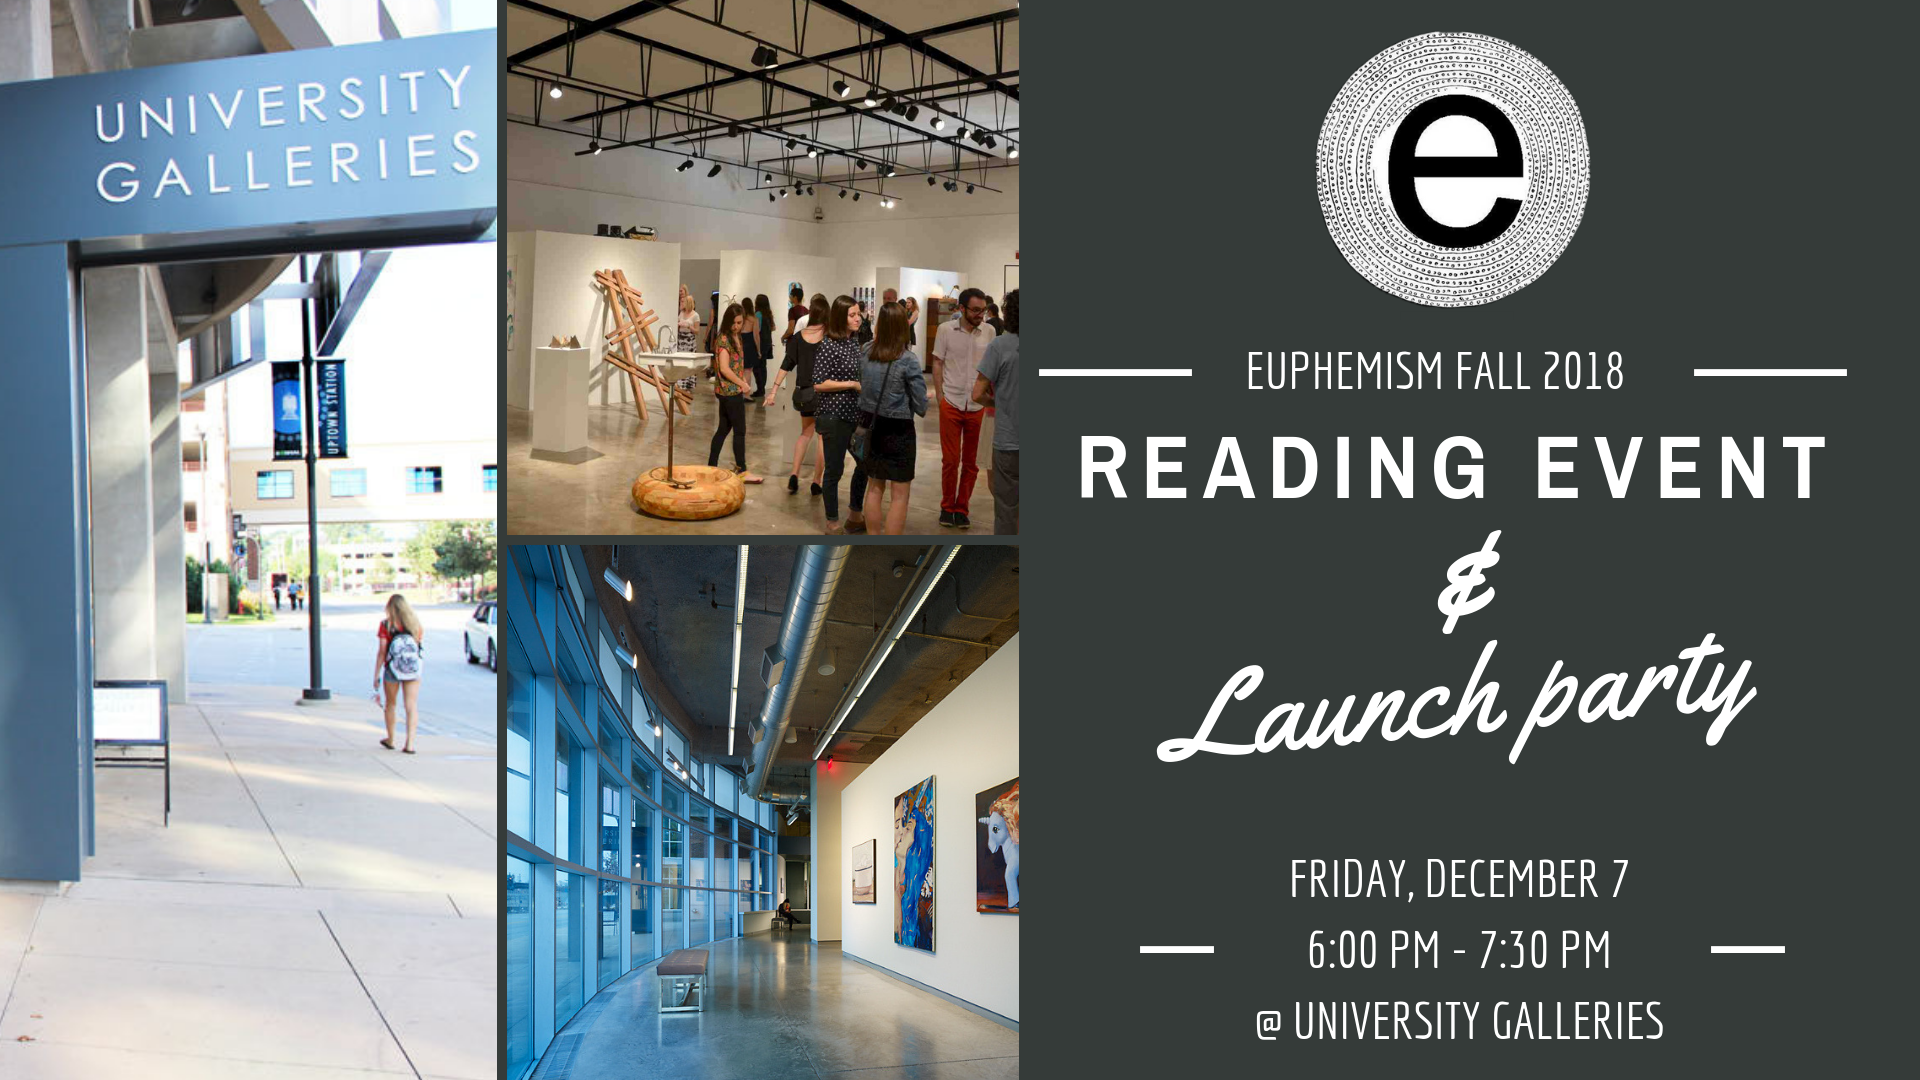 Euphemism Fall 2018 Reading Event and Launch Party. Friday, December 7, 6:00 PM until 7:30 PM. At university galleries.